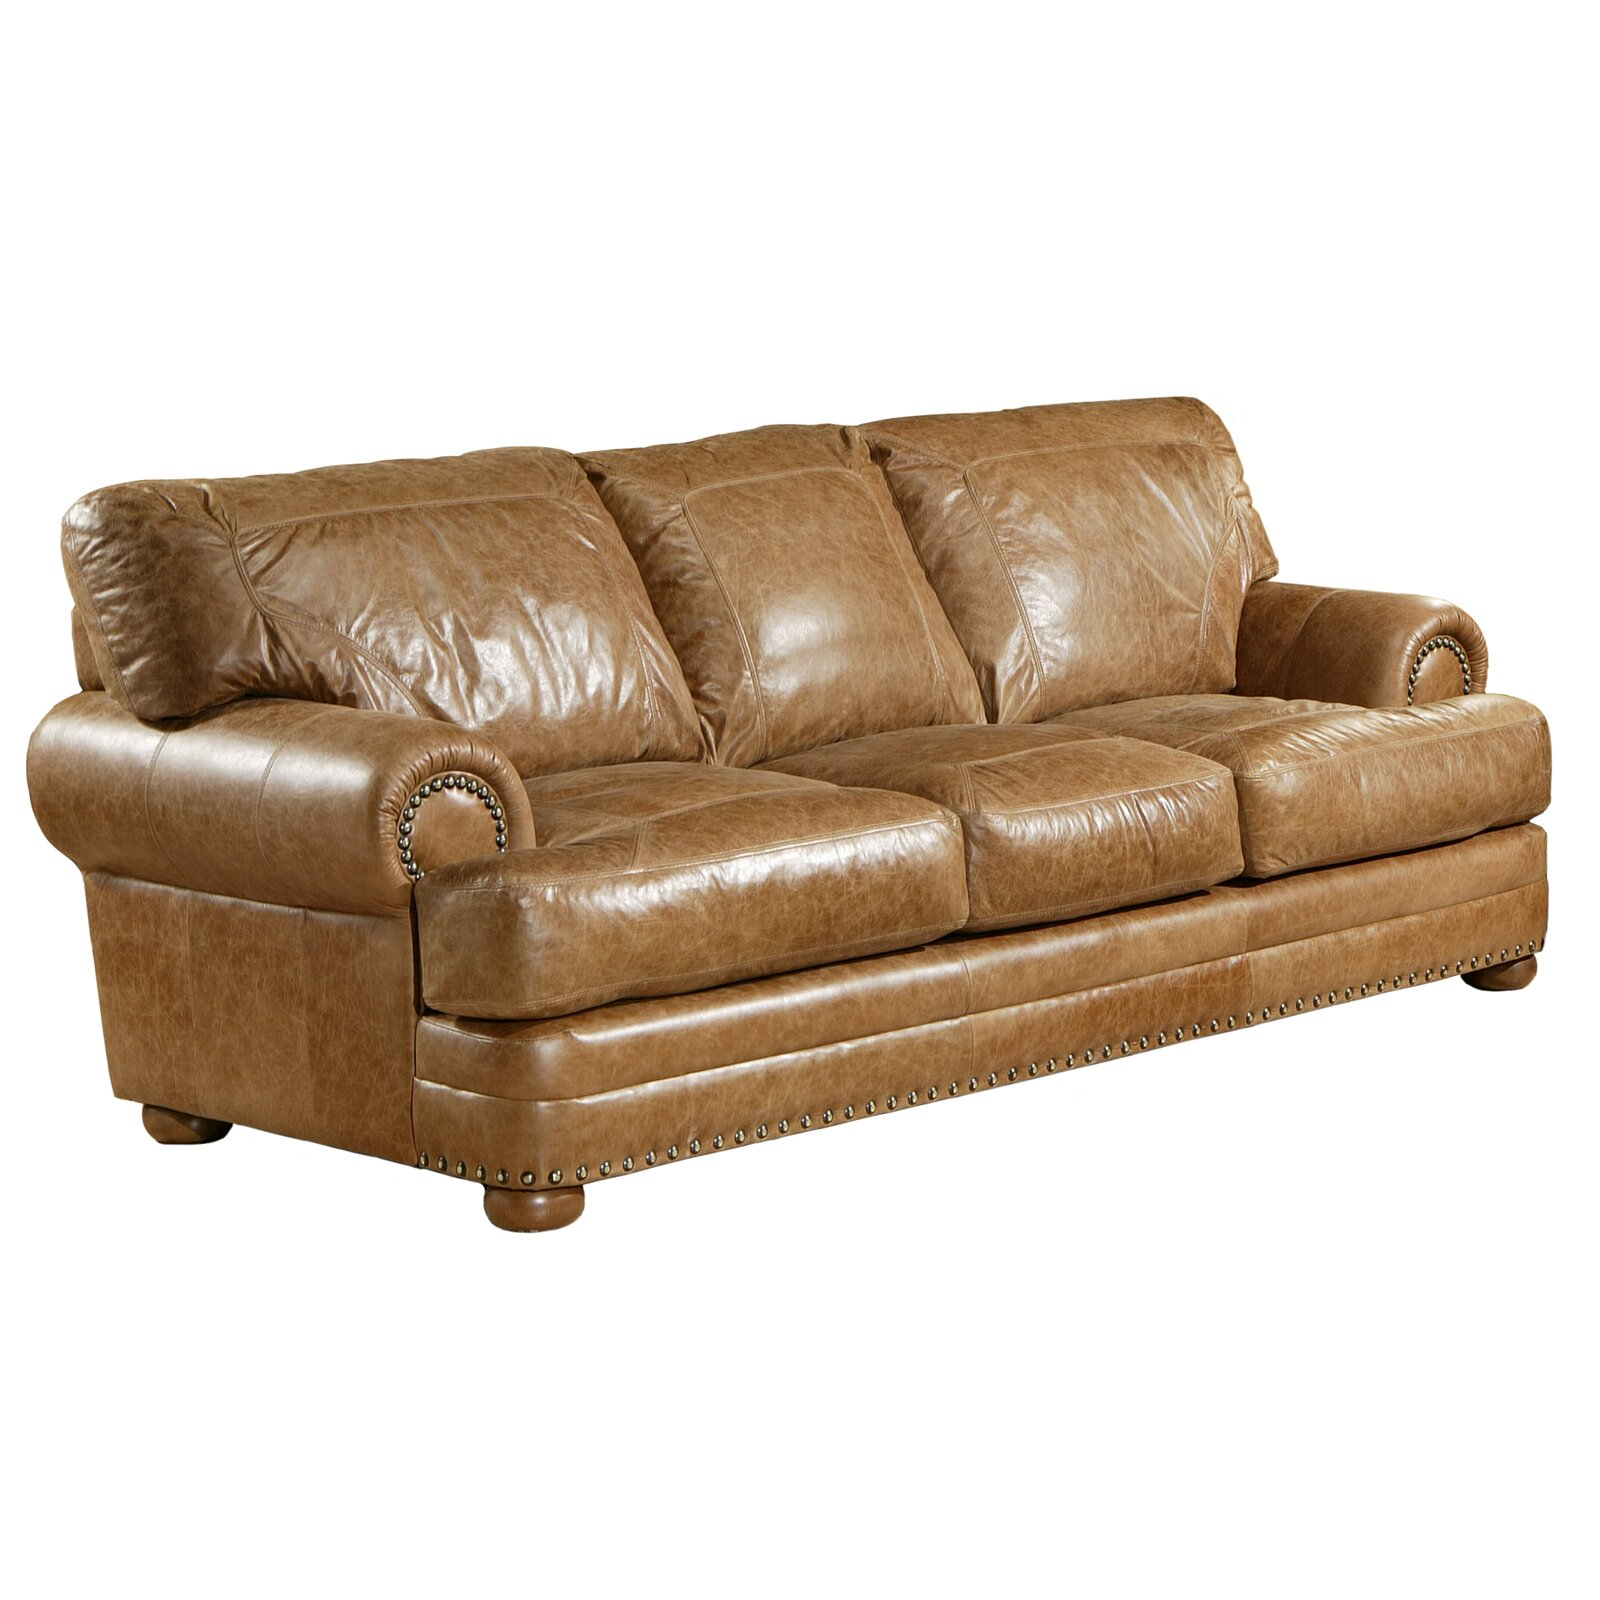 Reviews For Leather Sofas: Omnia Leather Houston Leather Sofa & Reviews